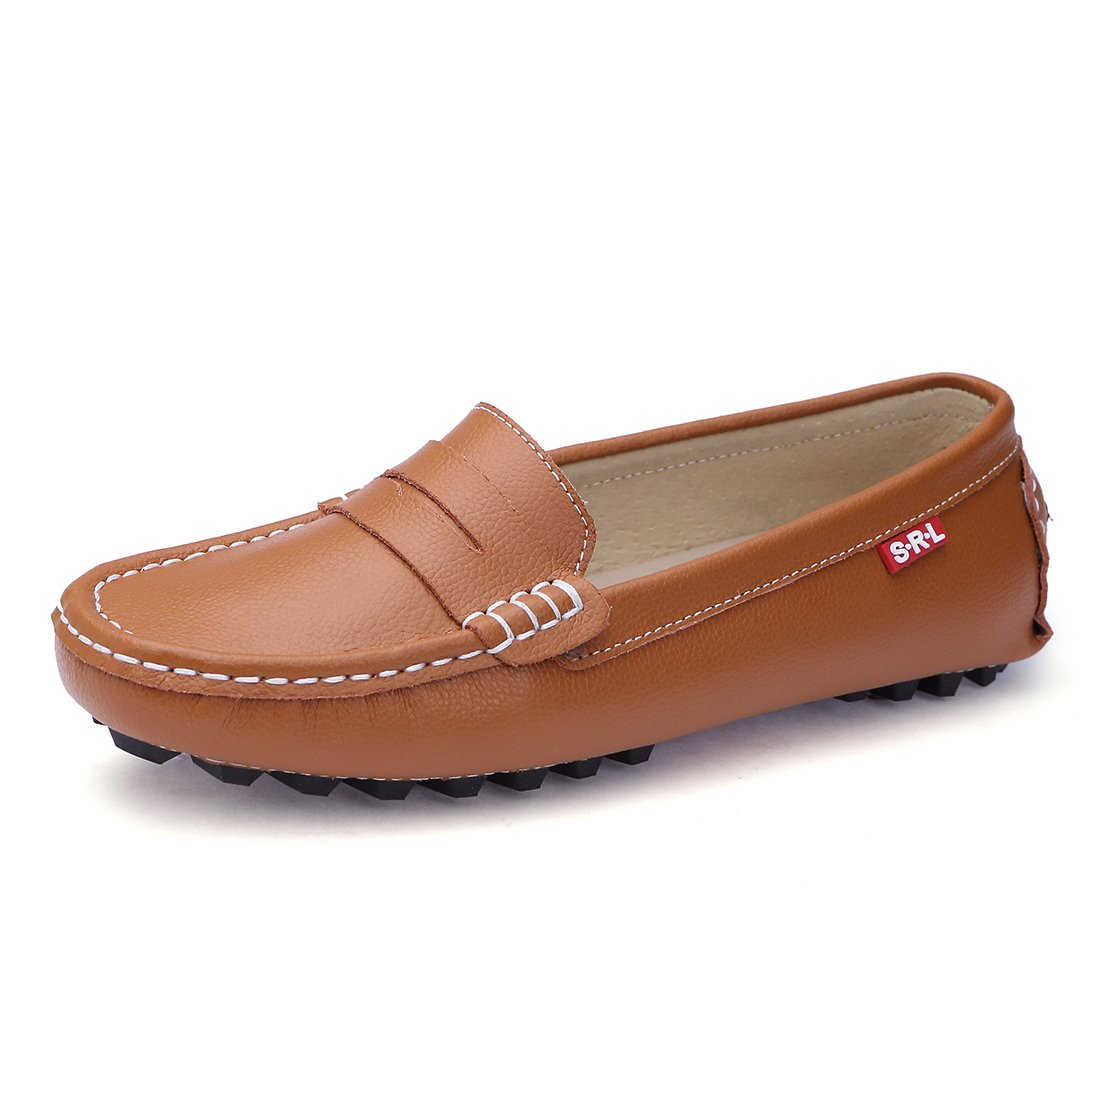 SUNROLAN 818-2zong8.5 Casual Women's Genuine Leather Penny Loafers Driving Moccasins Slip-On Boat Flats Shoes (8.5 B(M) US, Light Brown)